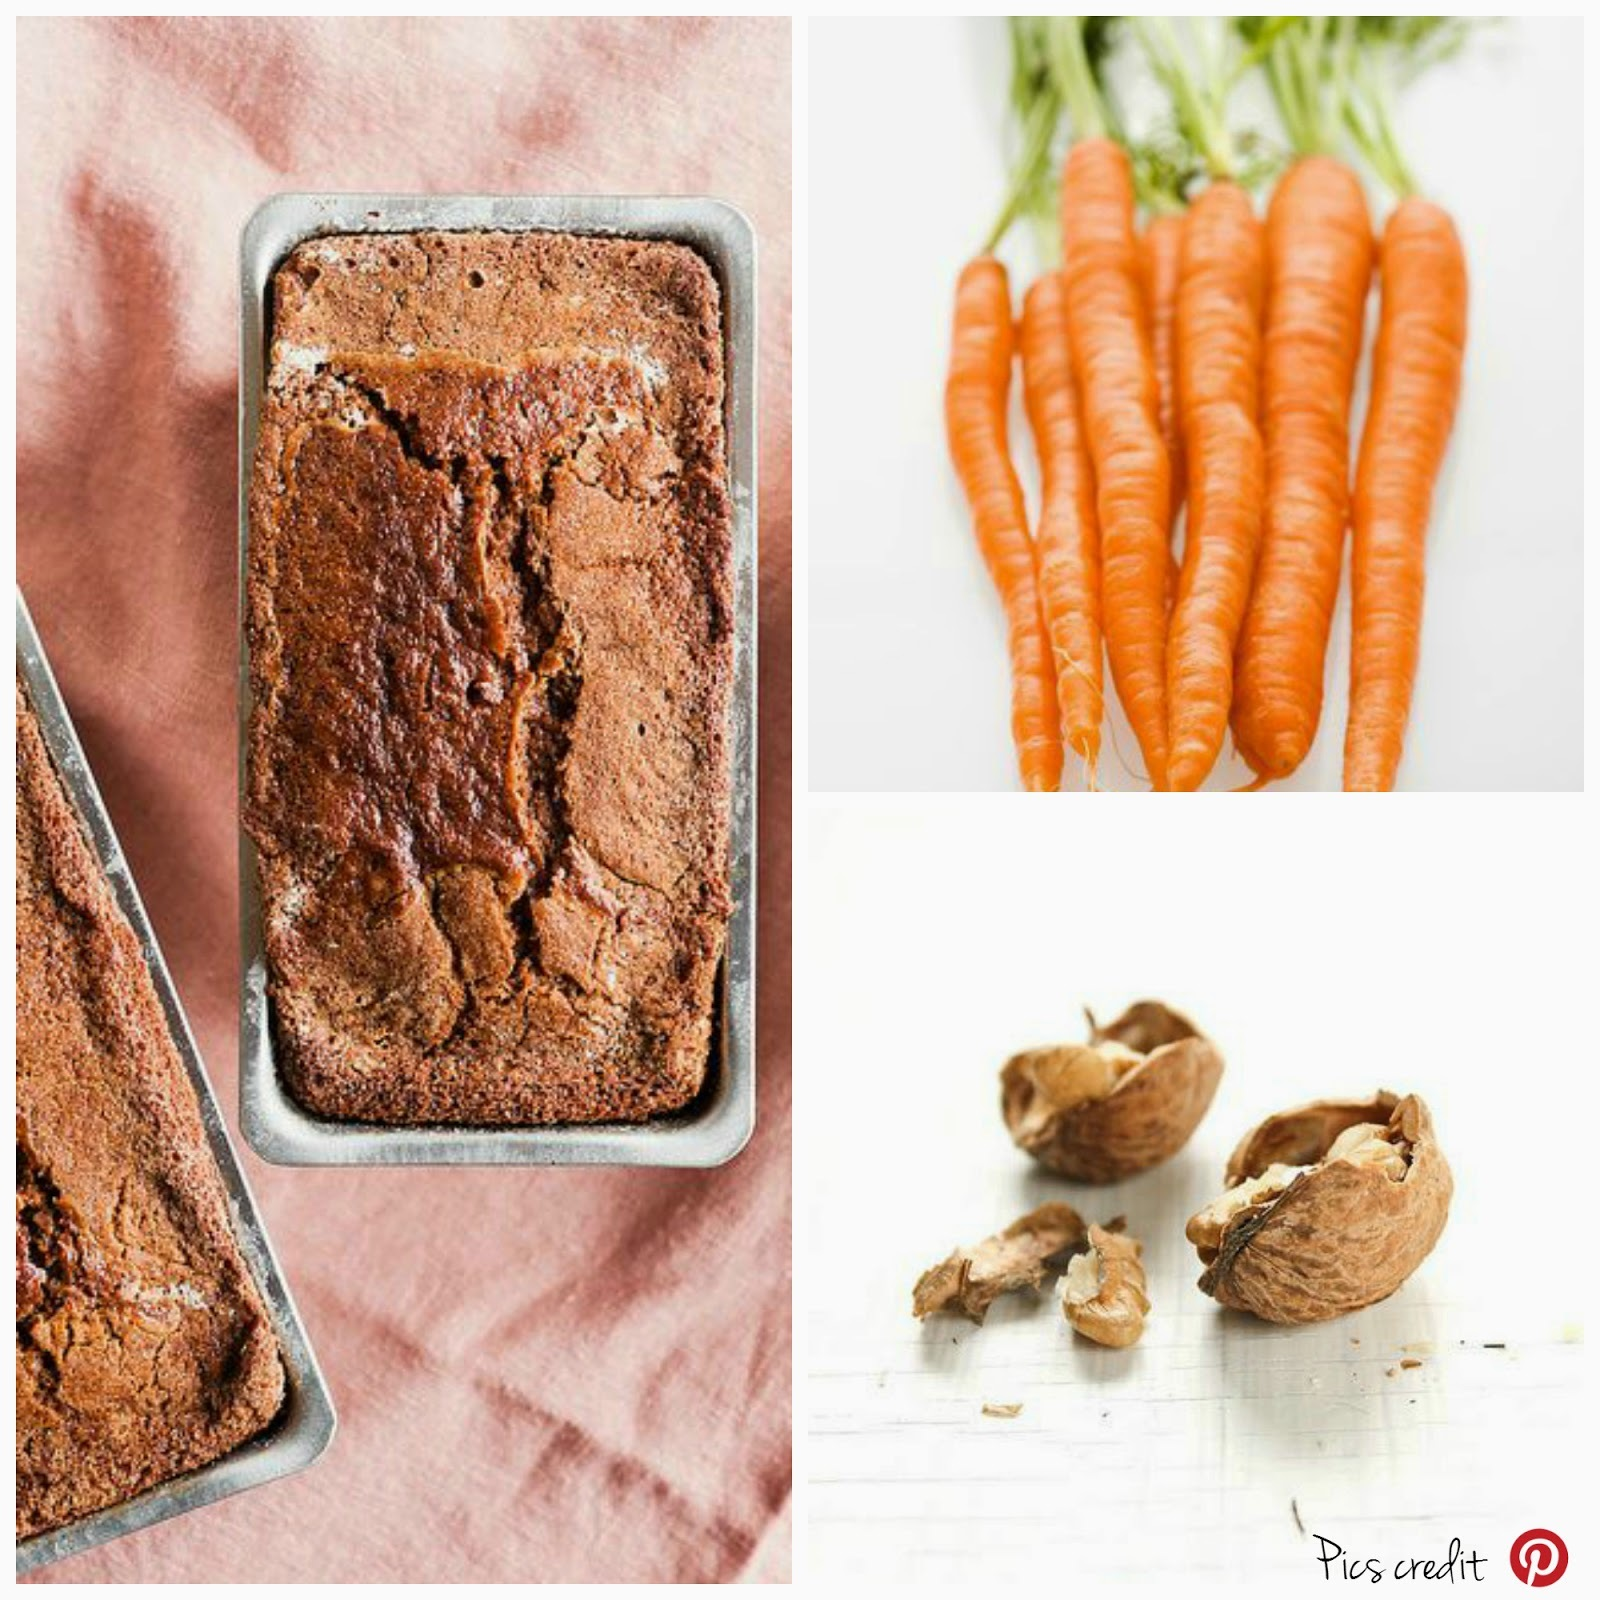 Torta morbida carote e noci / Soft carrot and nuts cake recipe